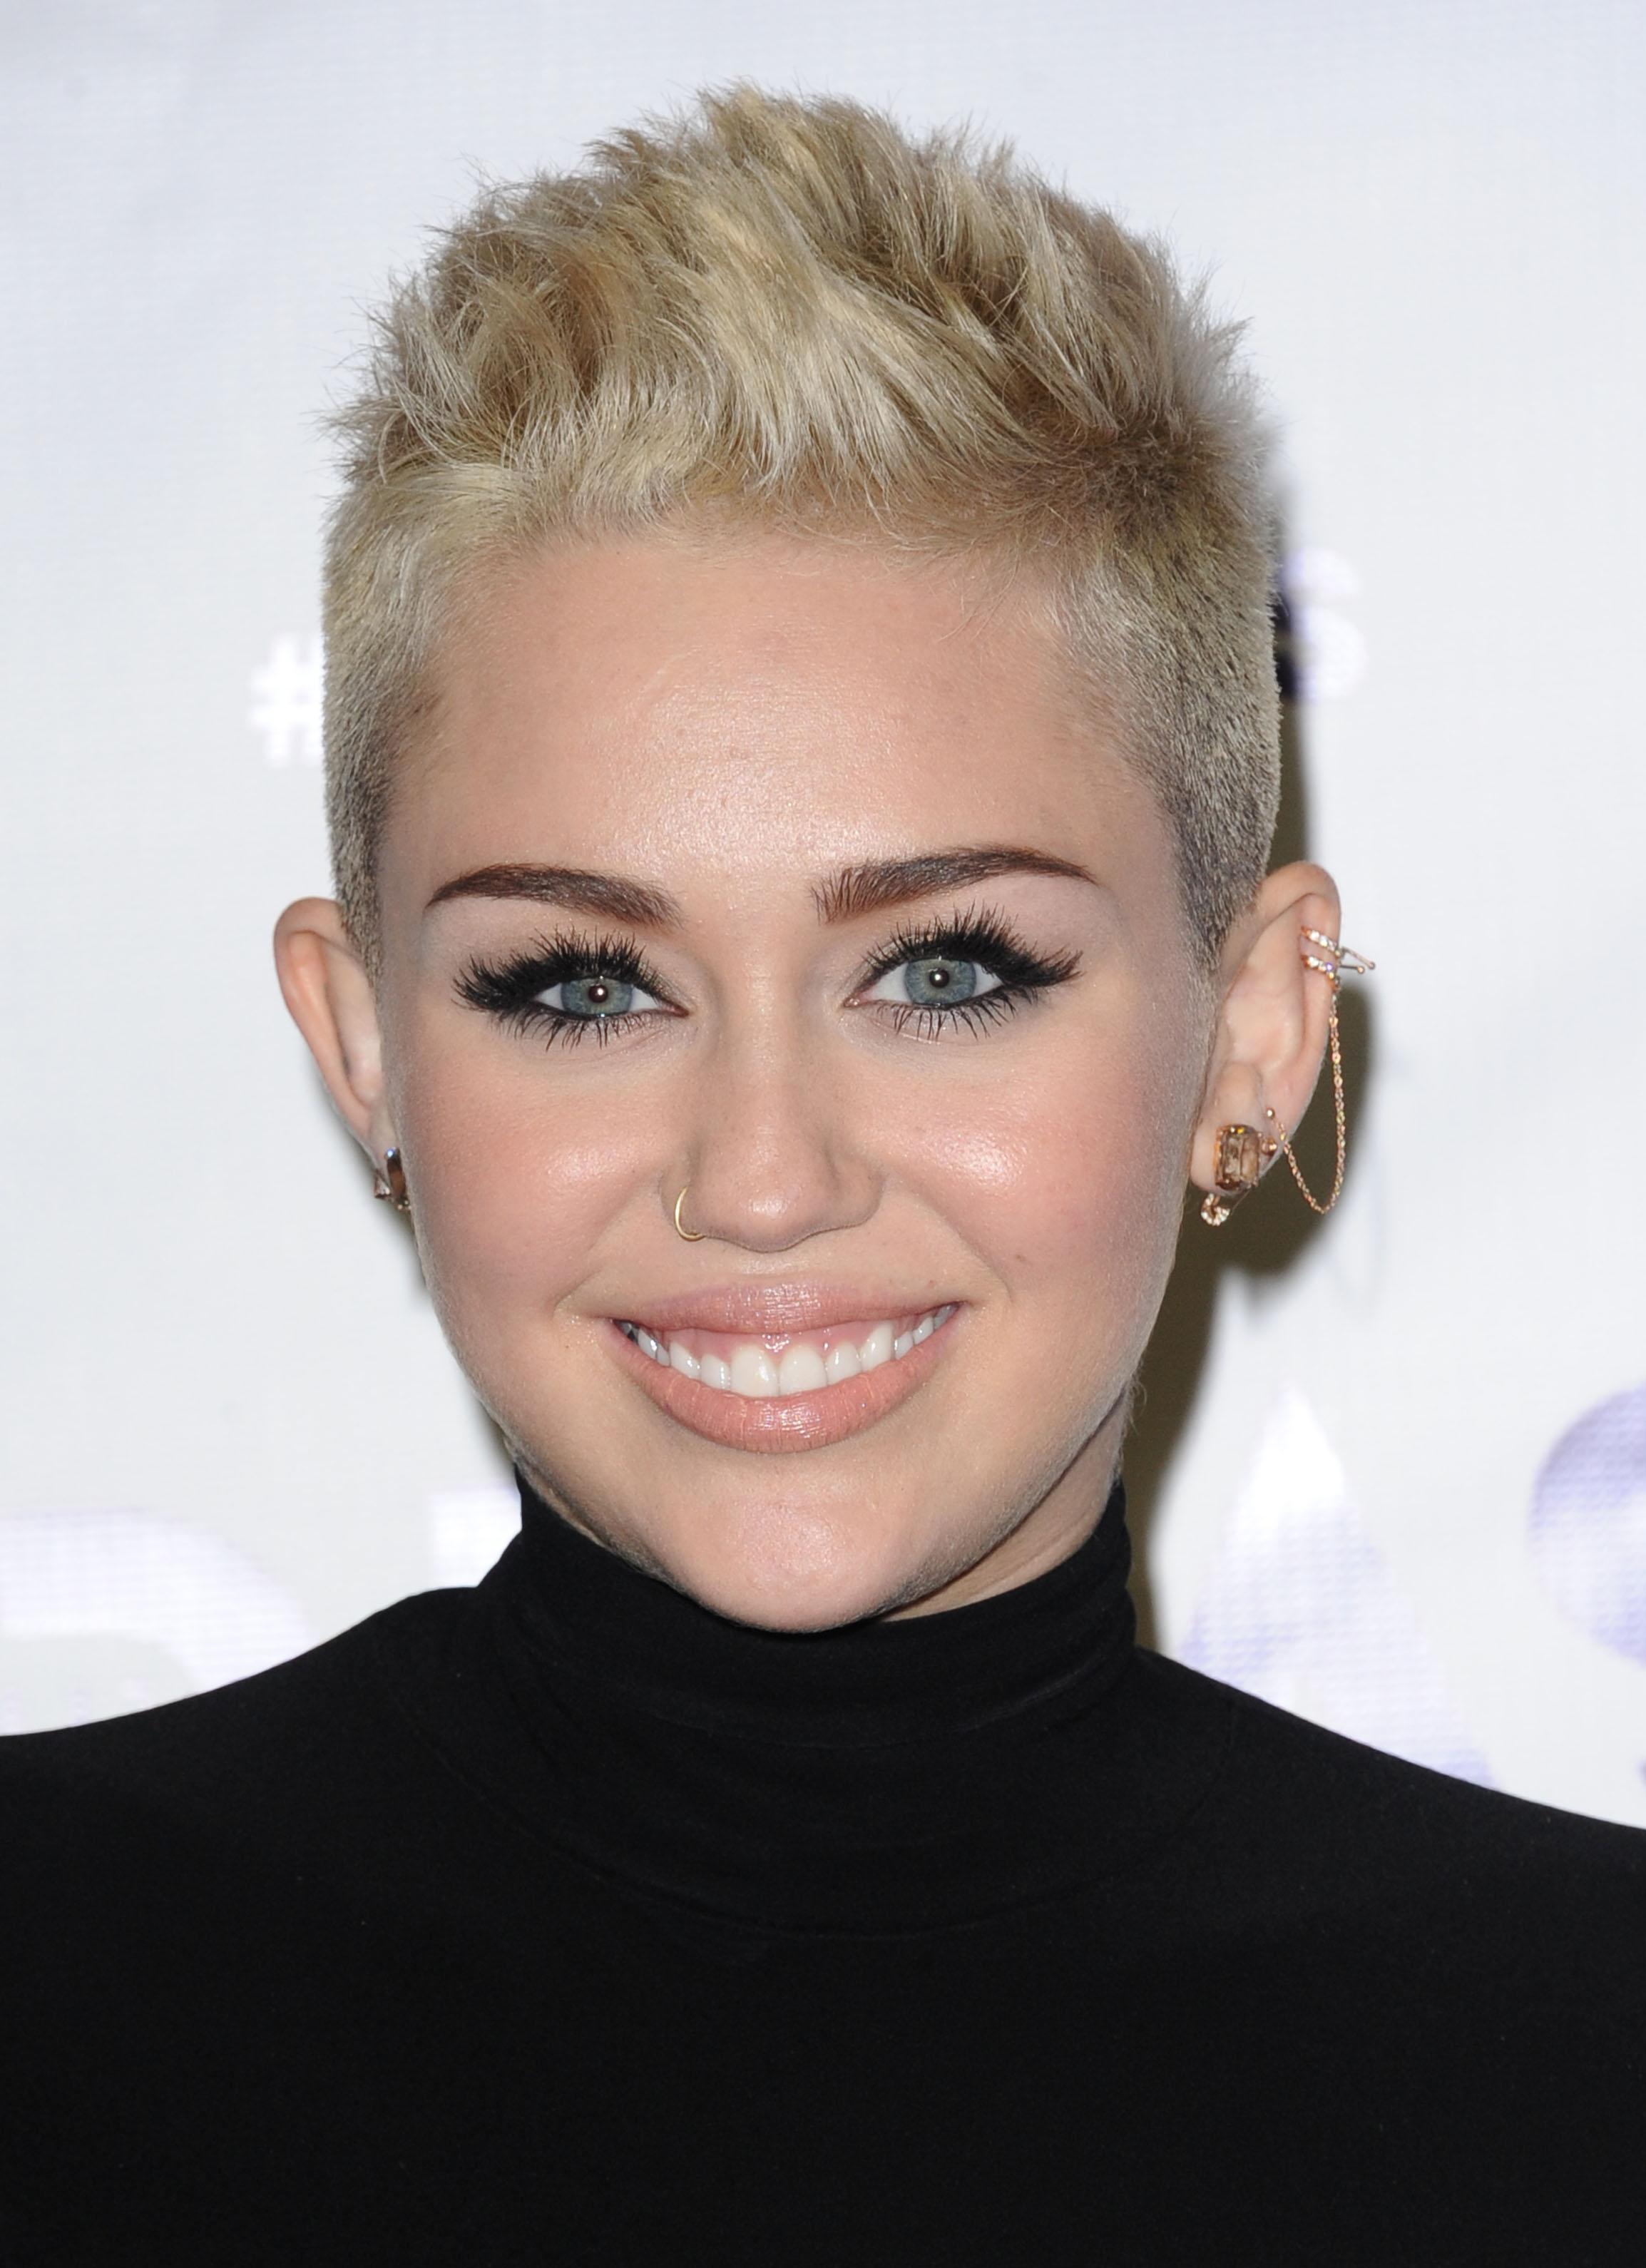 le piercing de nez de miley cyrus piercing nez les plus beaux piercings de nez des stars qui. Black Bedroom Furniture Sets. Home Design Ideas